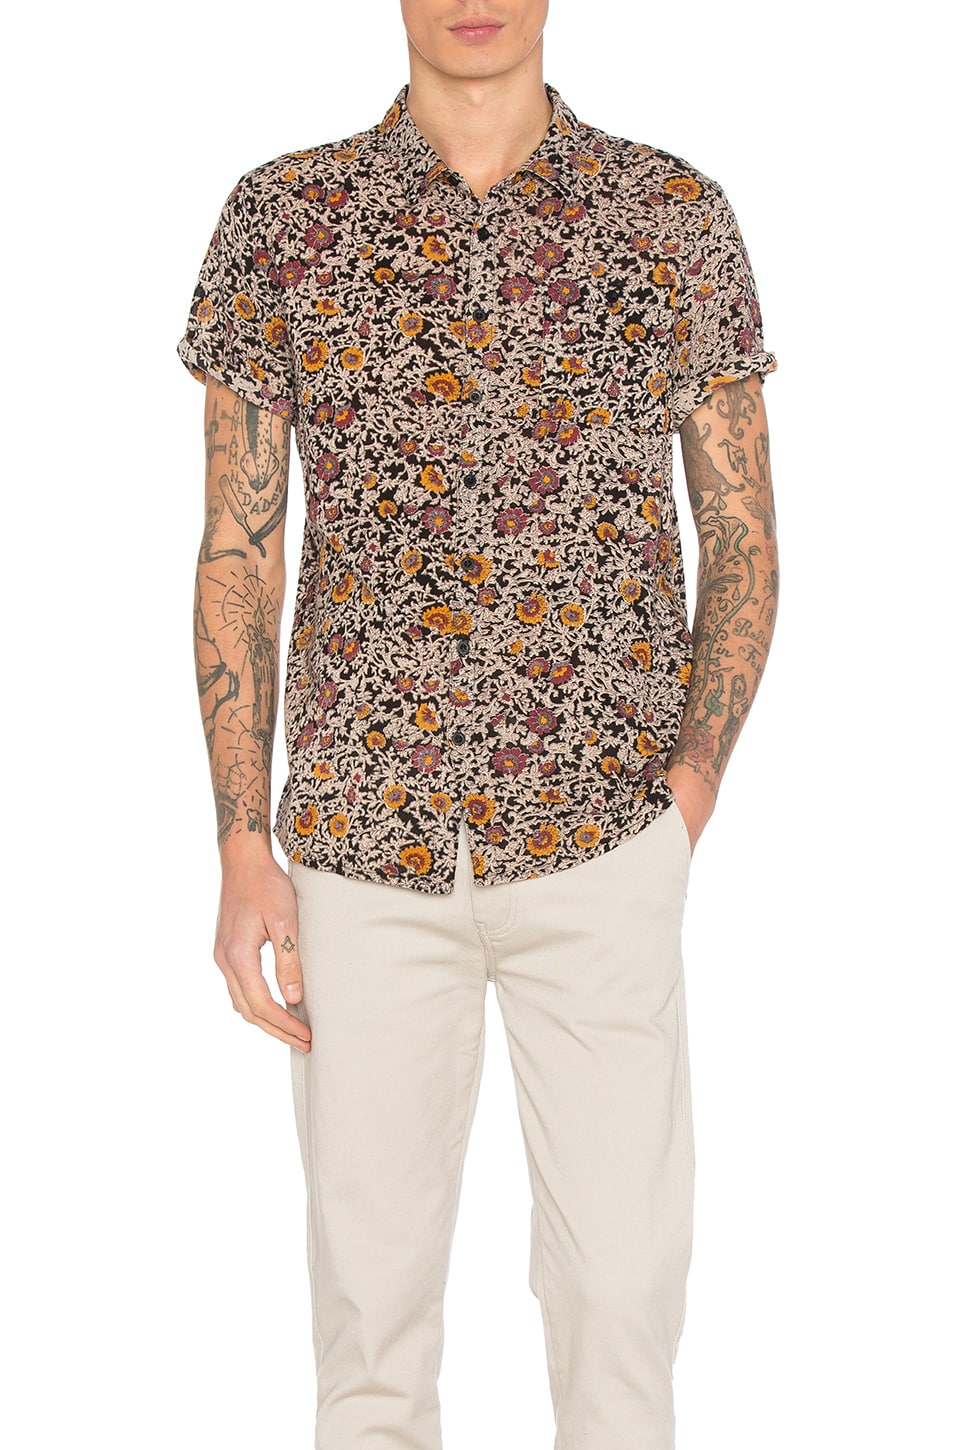 Black Floral Shirt by ROLLA'S